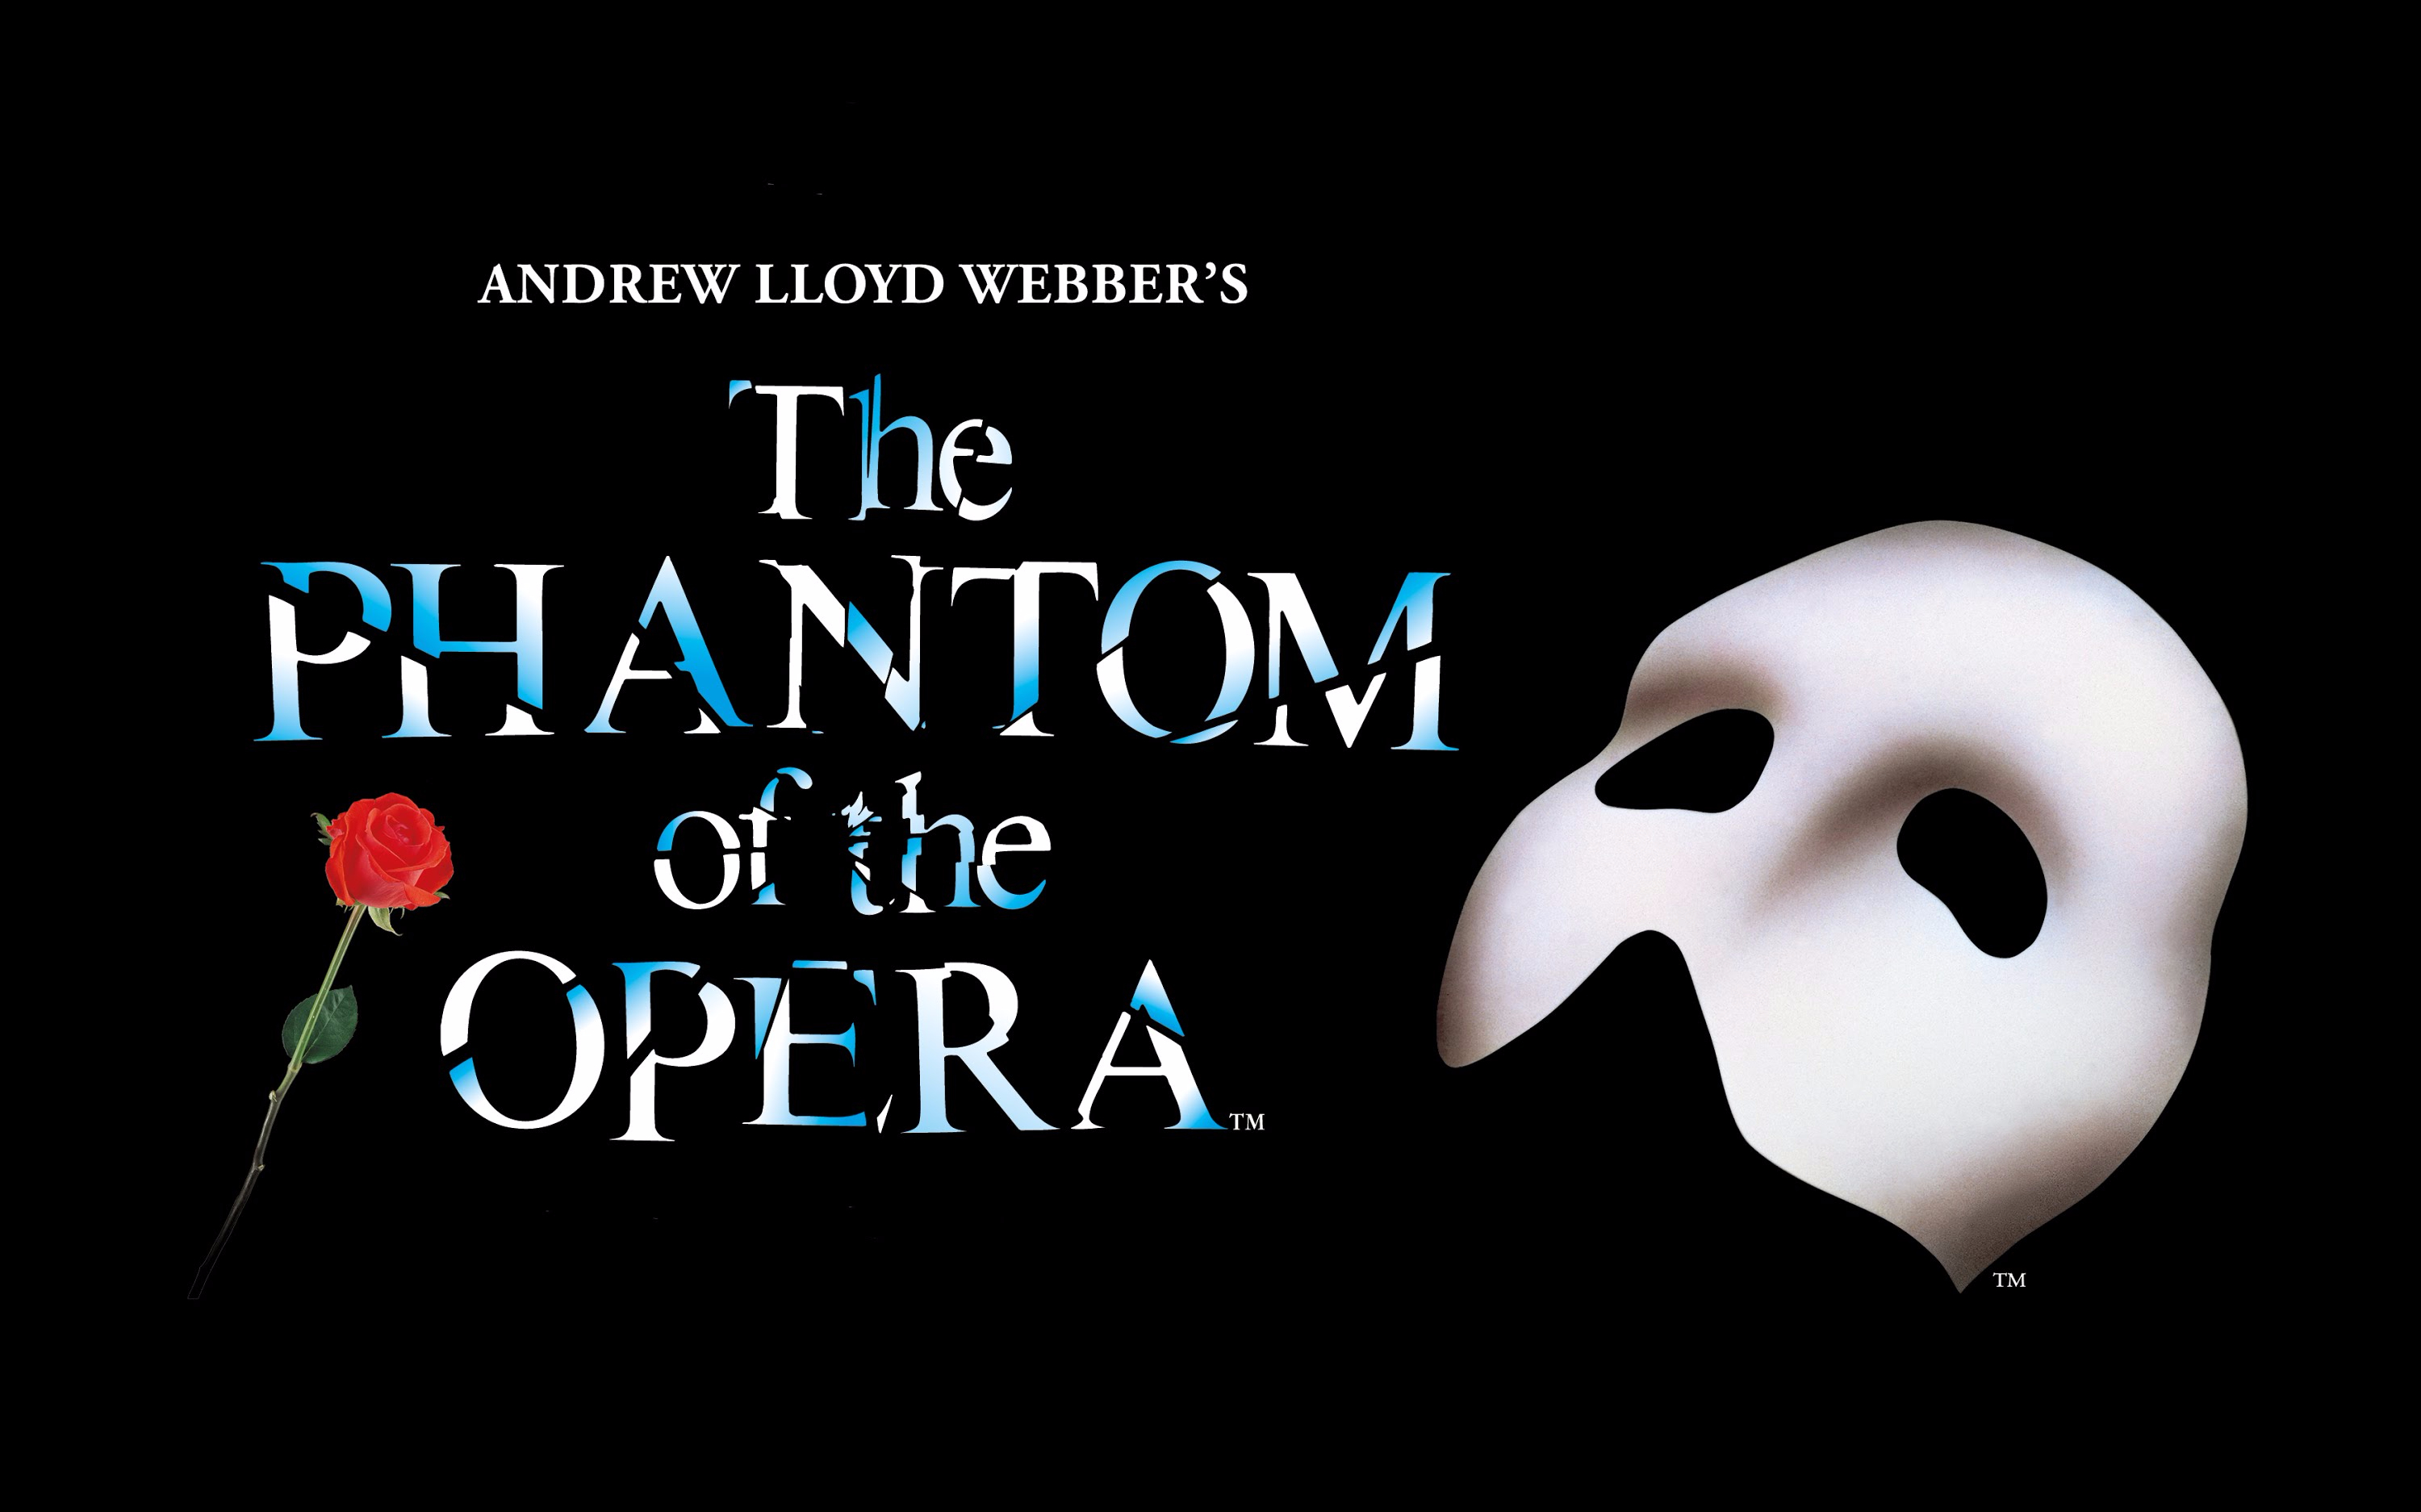 Cd0fa708 27c2 4145 9fcf 14e84d910456 517 new york phantom of the opera 00